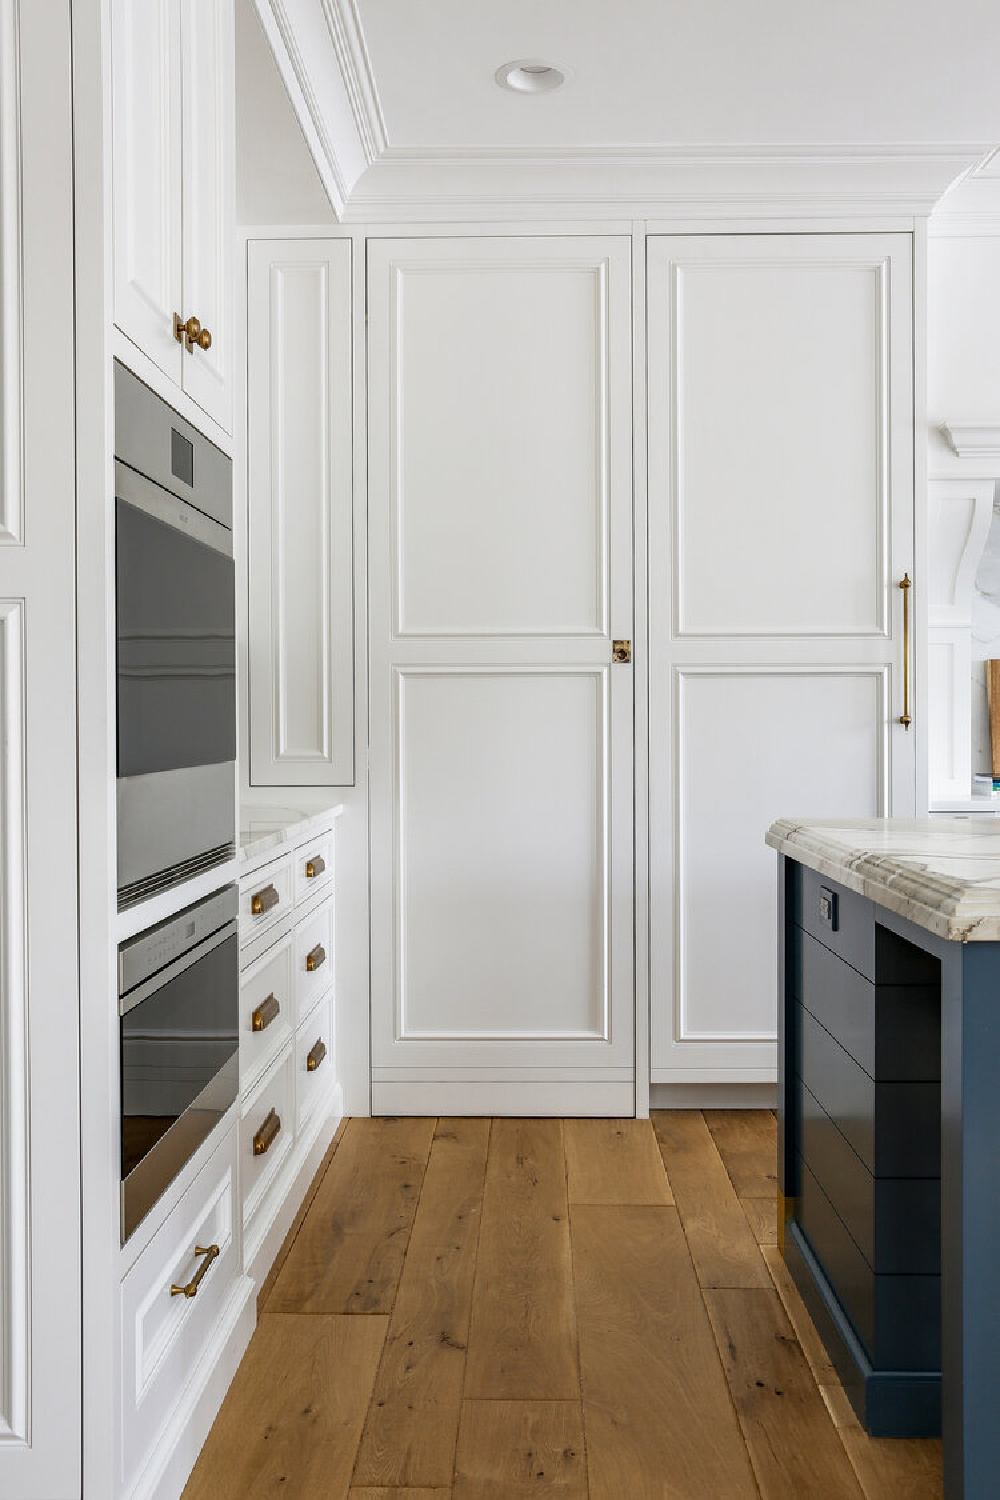 Classic white kitchen with custom cabinets, wall ovens, and blue accents - Edward Deegan Architects. Find more blue kitchen ideas in this story!